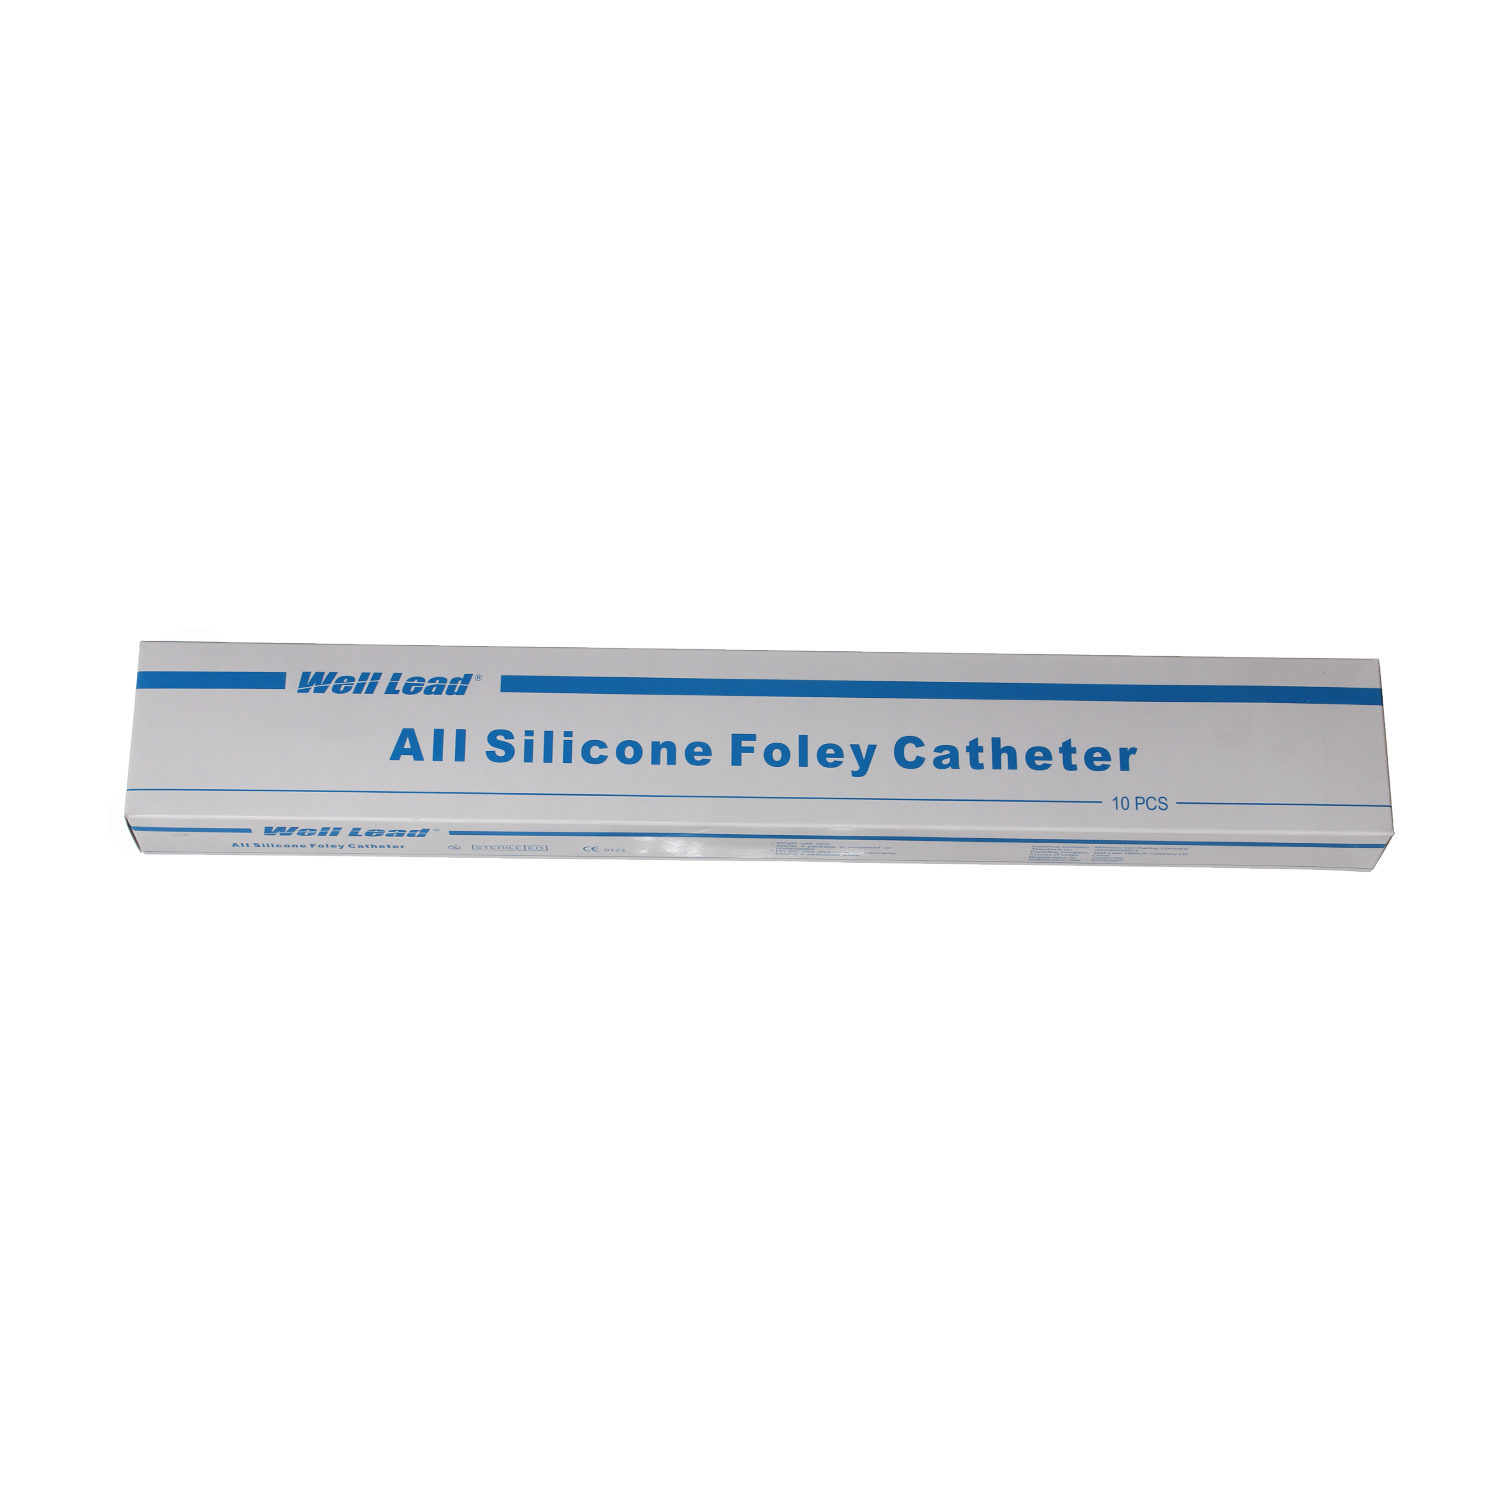 ALL Silicone foley Catheter 20 Fr